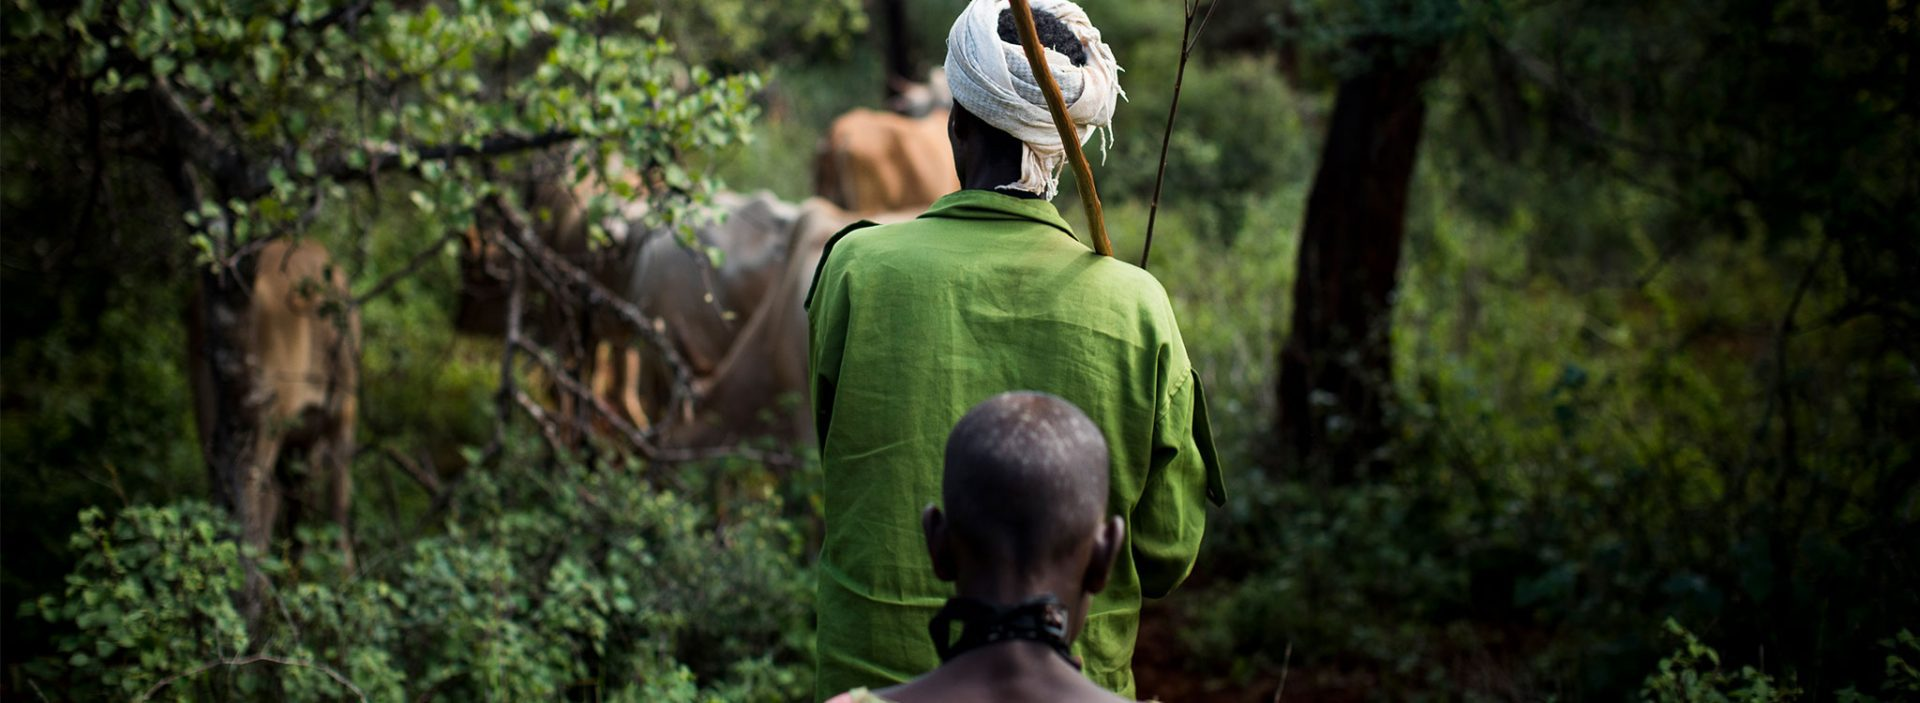 Farmer looking after his livestock in Ethiopia